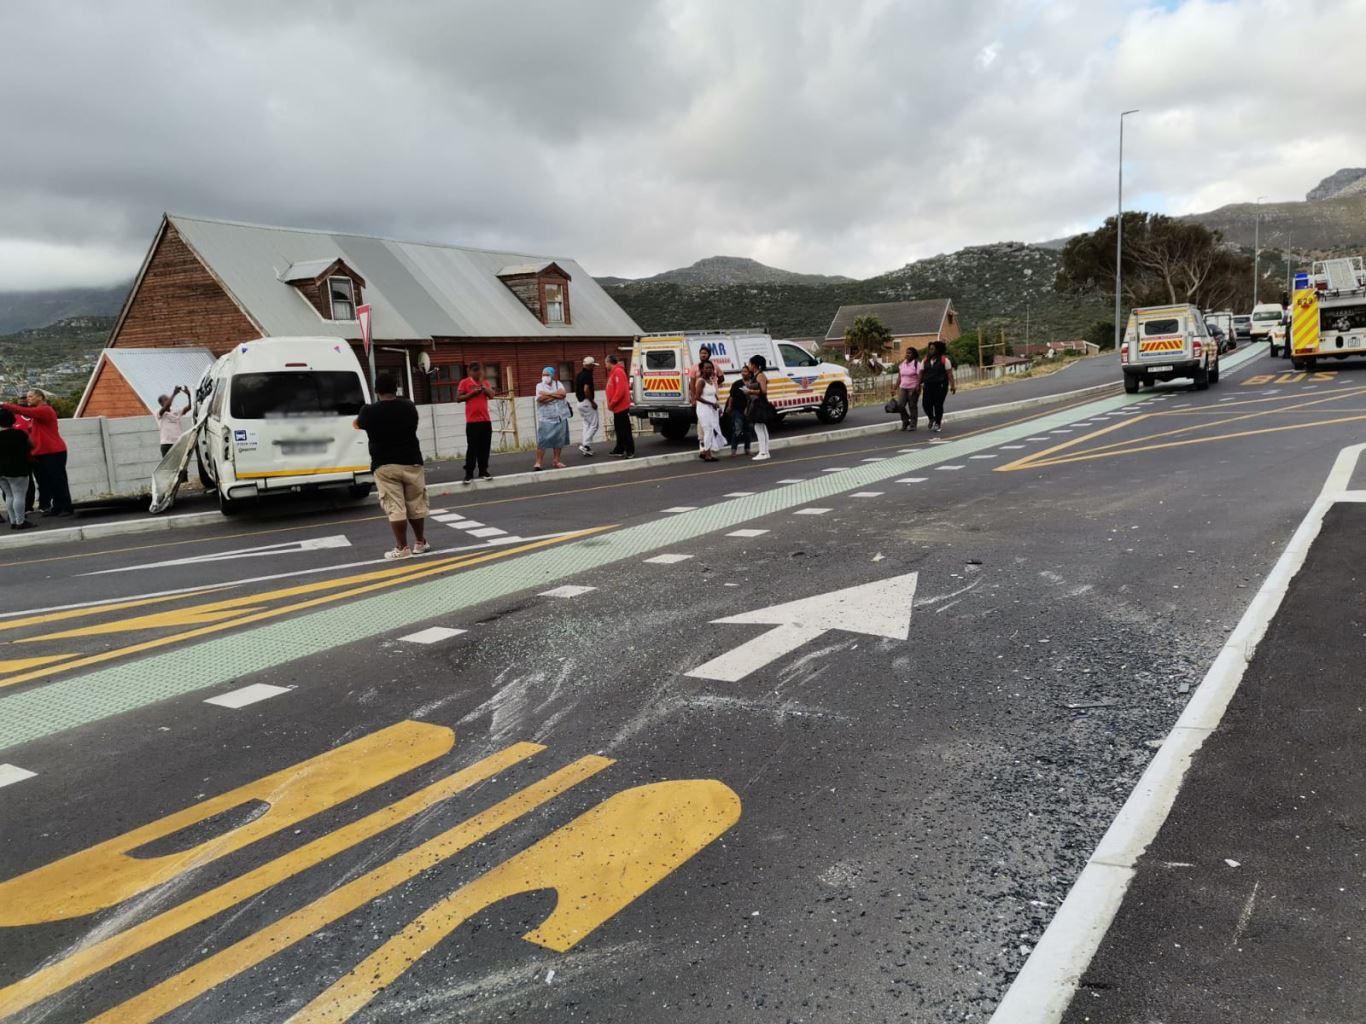 Five injured in a collision at the intersection of Ou Kaapse Weg and Glencairn Expressway